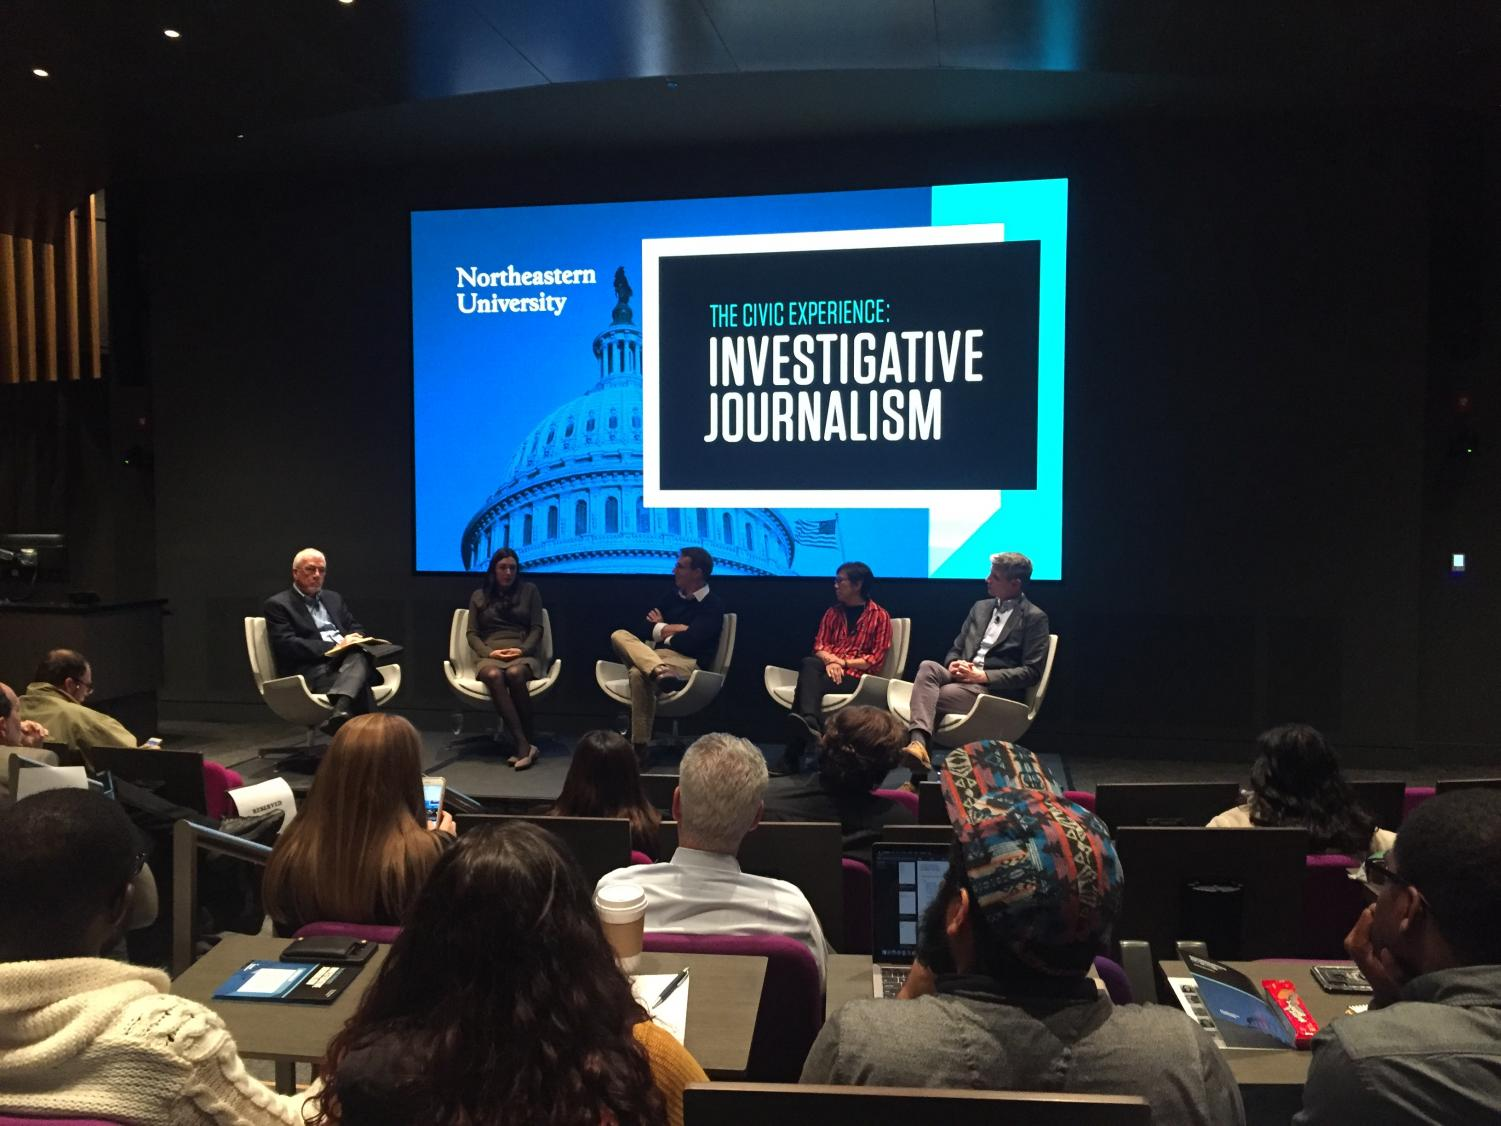 Journalists gather for an investigative journalism panel on Oct. 28.